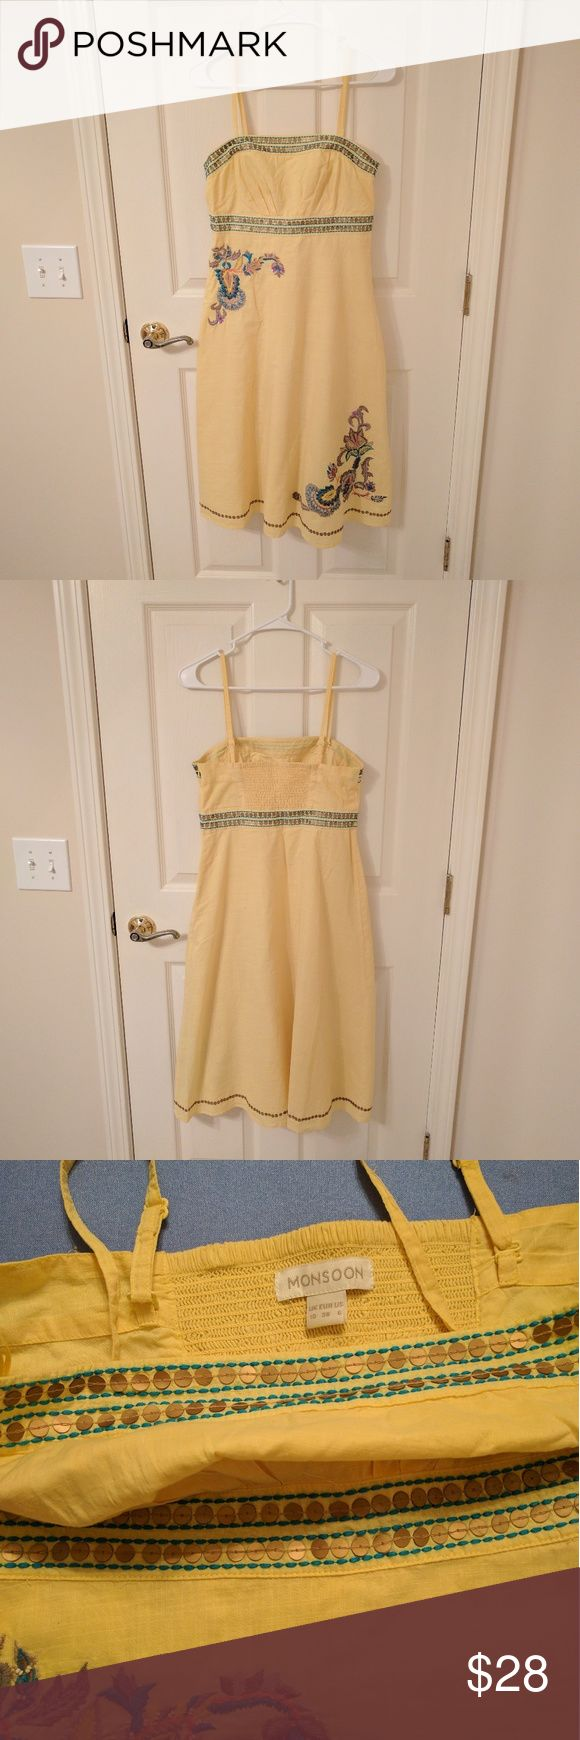 Yellow summer dress with embroidery Monsoon dress purchased in London with exquisite embroidery and gold matte sequins. Like new condition. Can be worn as strapless or with spaghetti straps. Monsoon Dresses Maxi